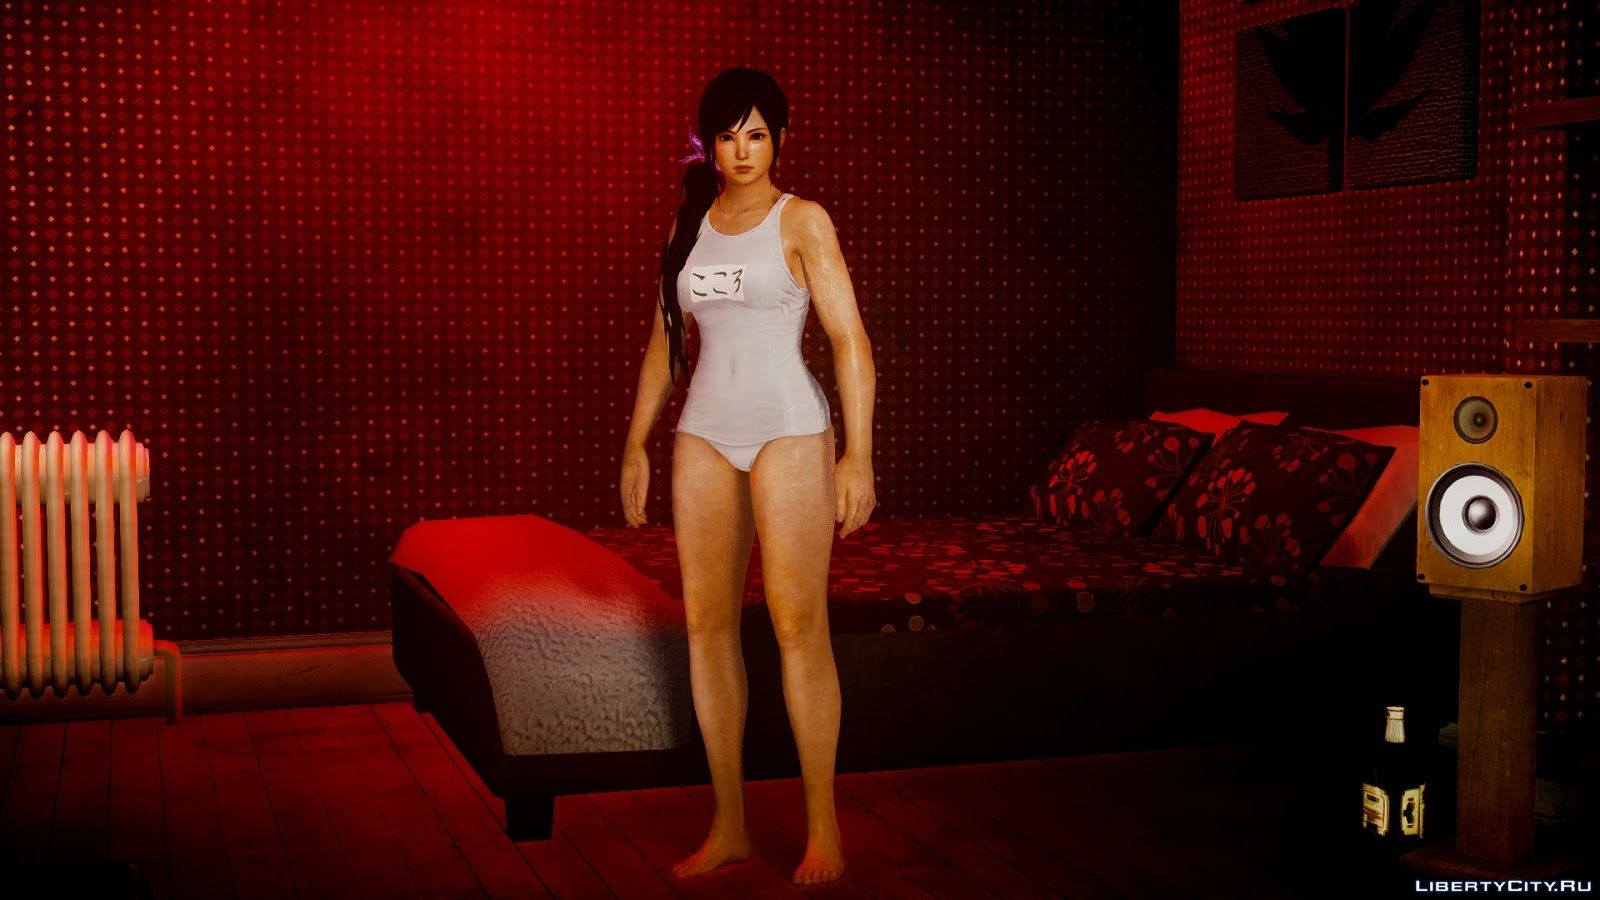 Gta 5 female naked pornos picture